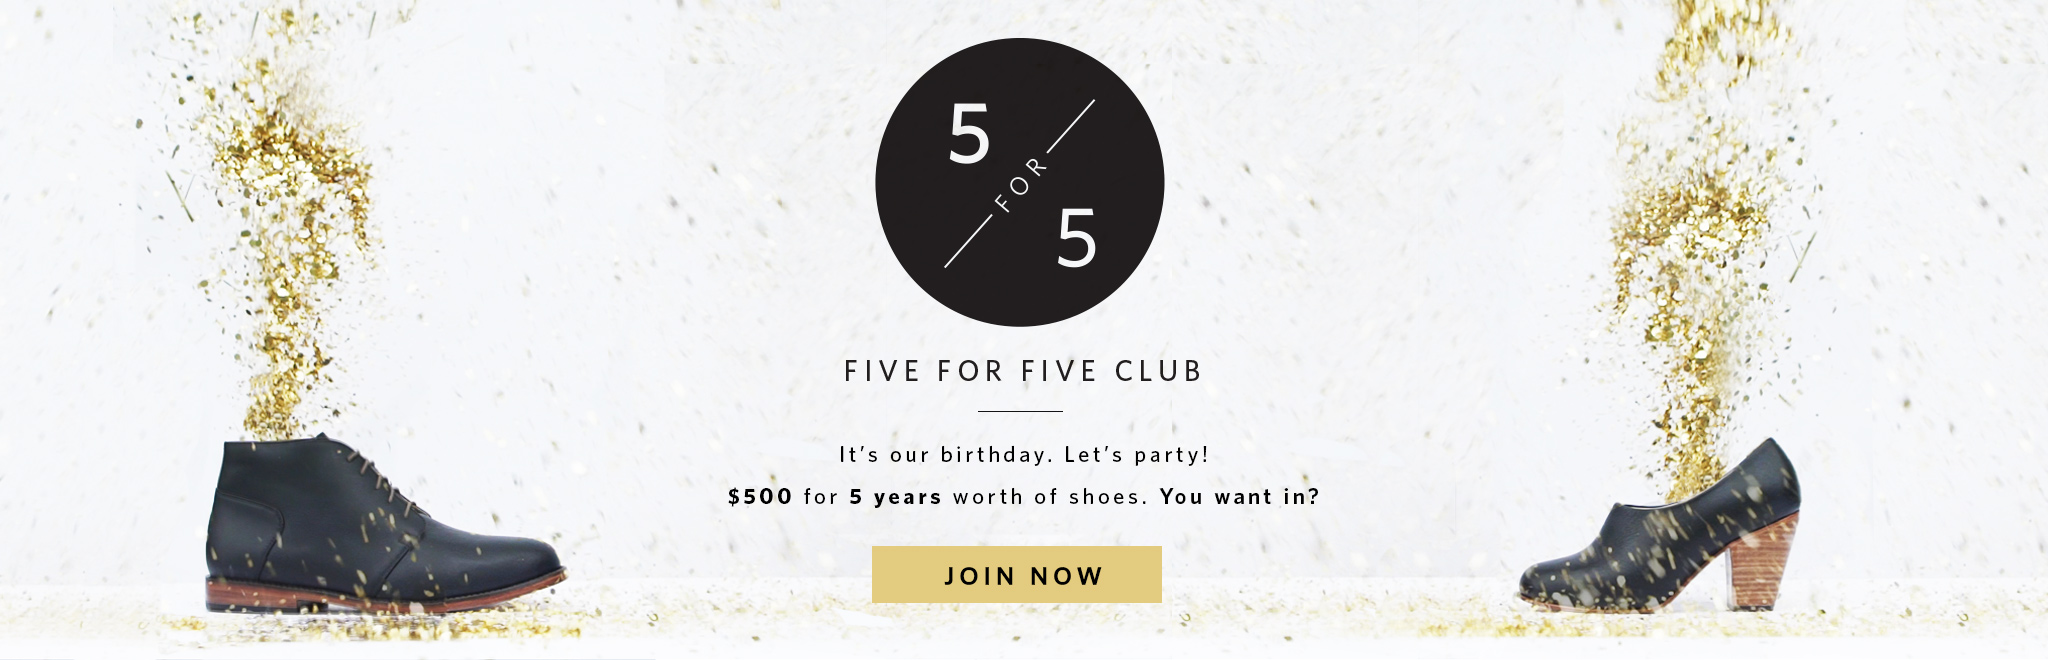 Join The 5 for 5 Club - Nisolo